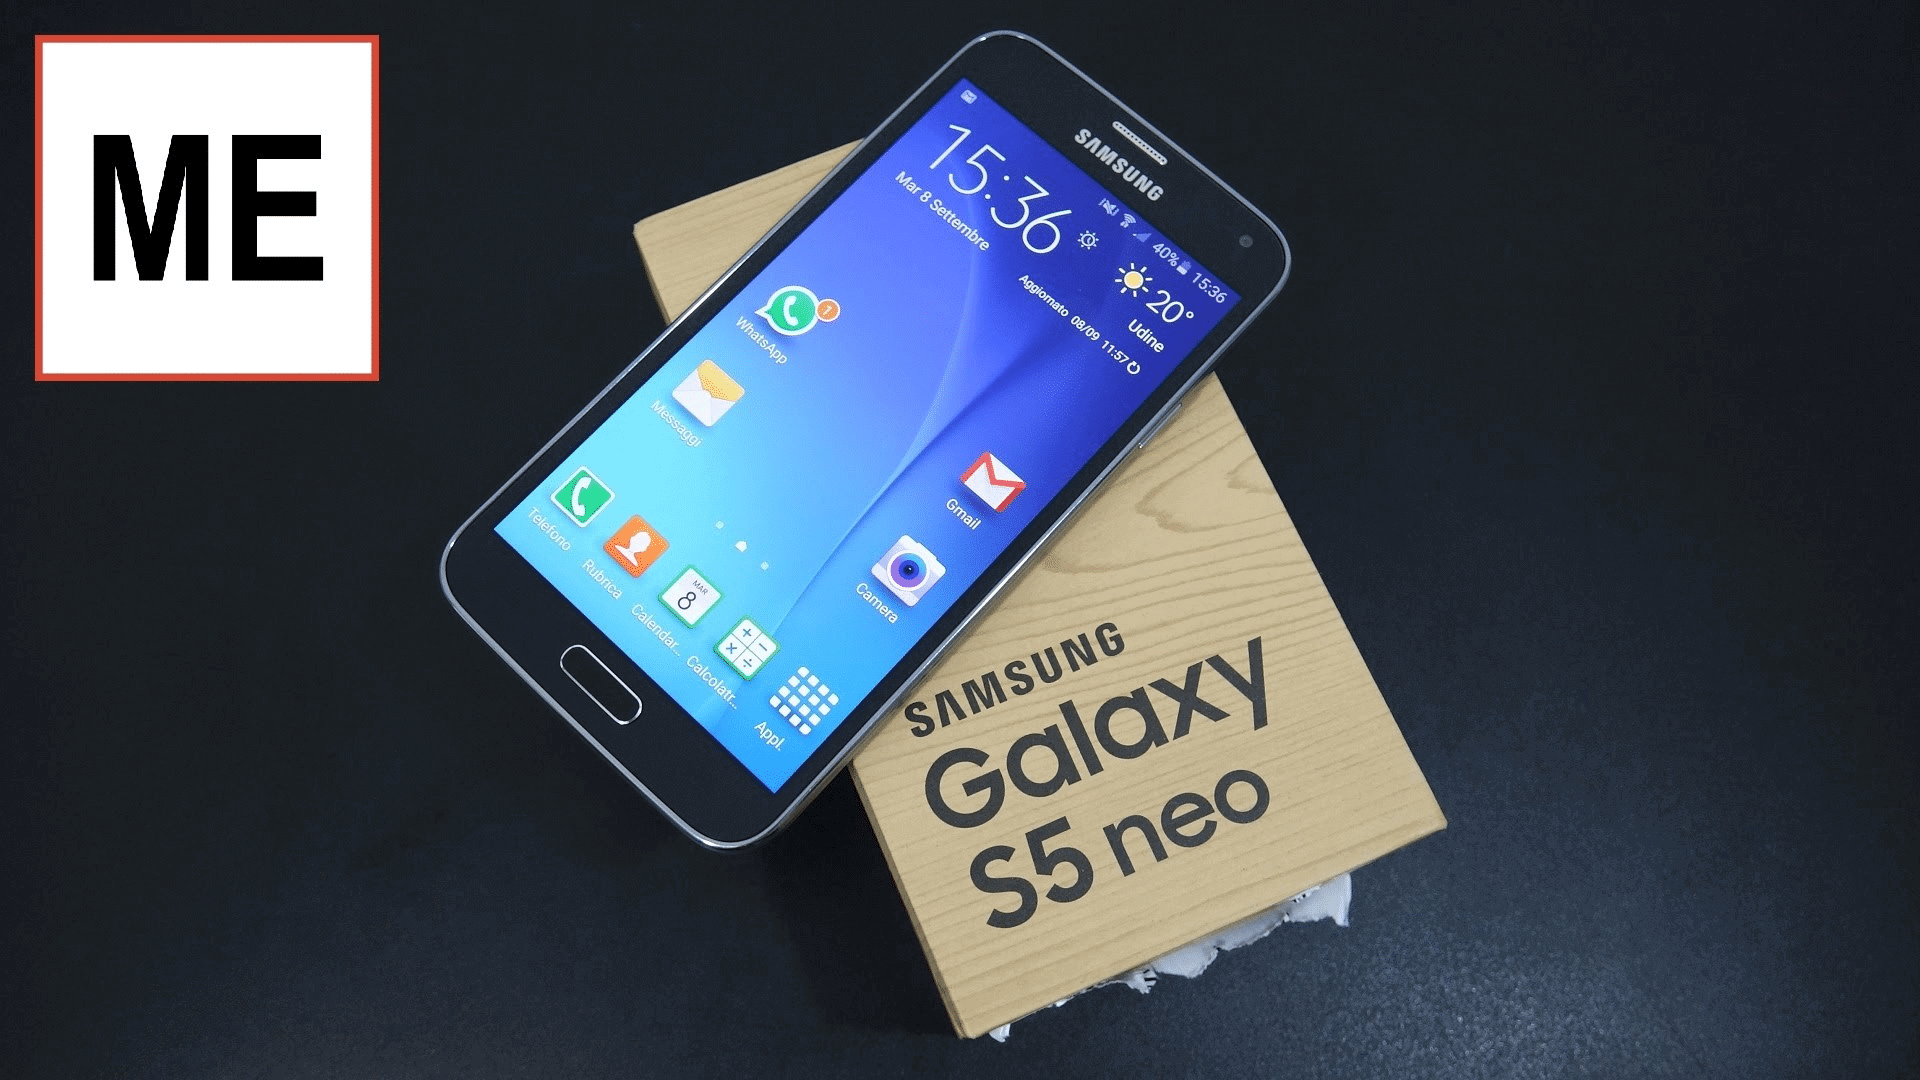 Galaxy S5 Neo updated to Android 7.0 Nougat official update 11